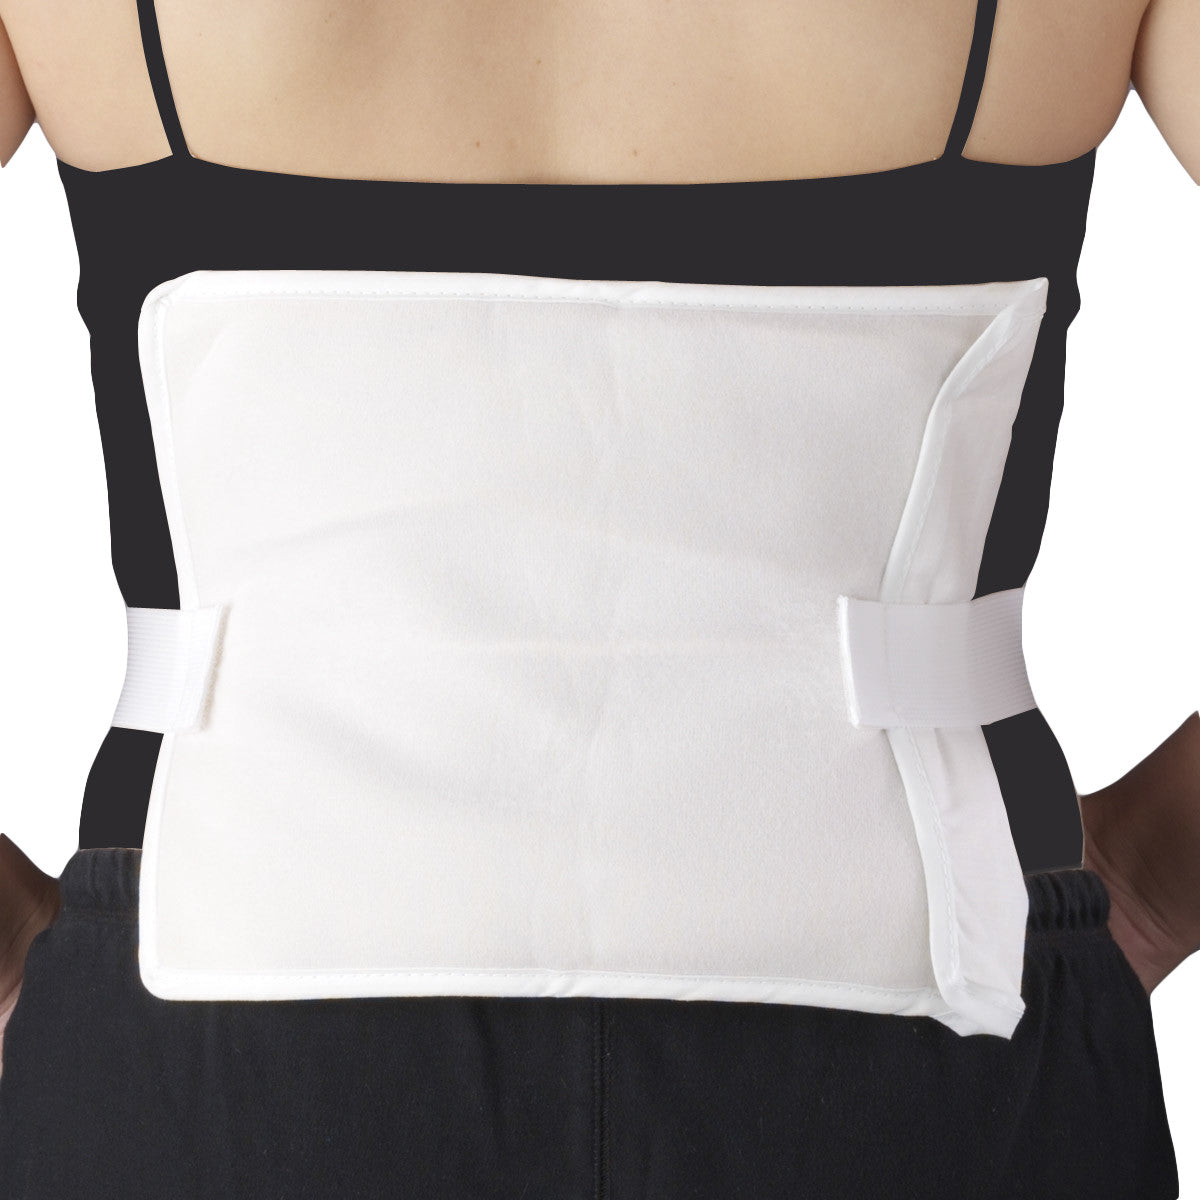 THERMA-KOOL REUSABLE HOT & COLD COMPRESS ON BACK